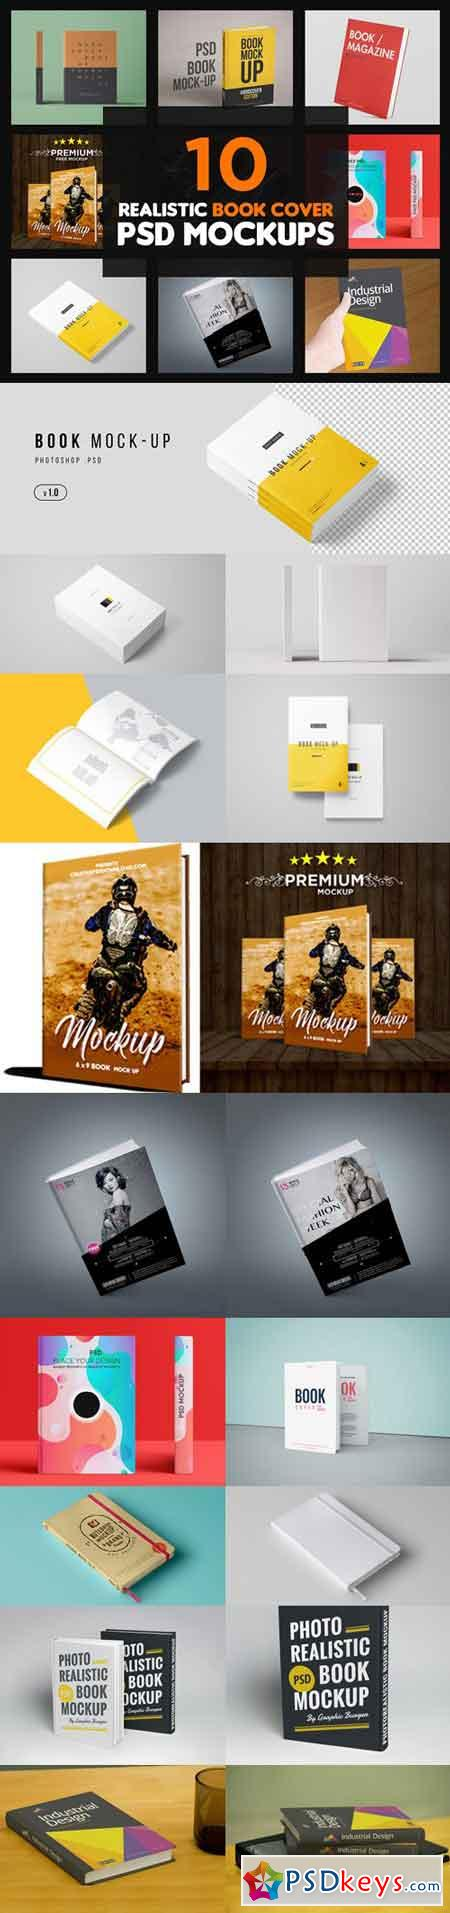 10 Realistic Book Cover PSD Mockups